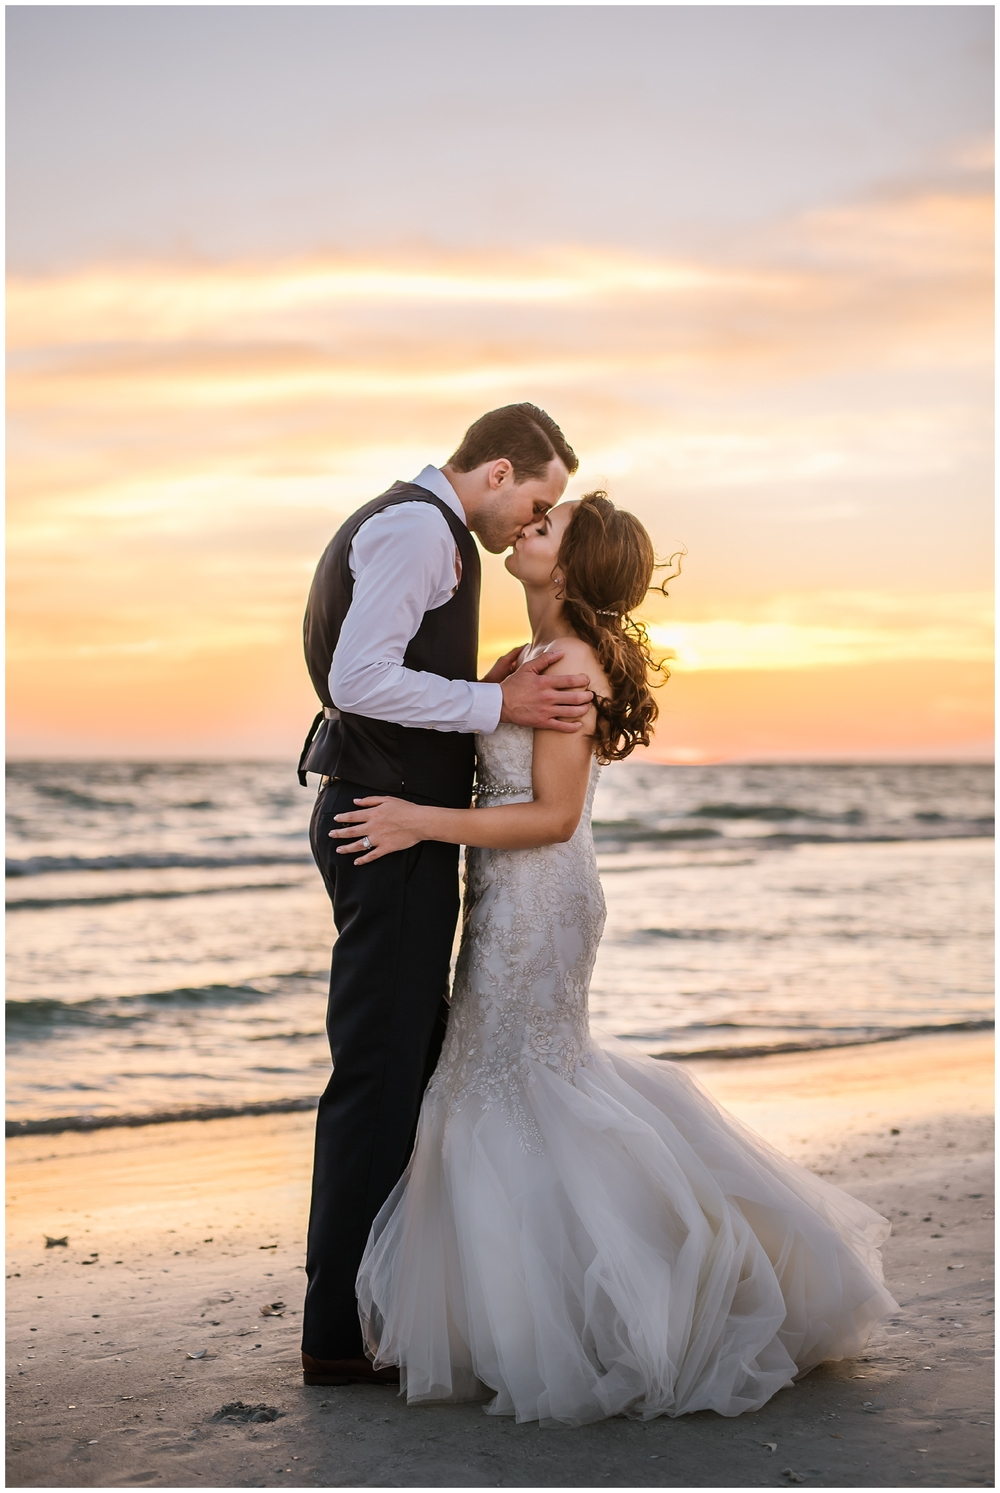 st-pete-wedding-photographer-blush-romantic-post-card-inn-beach_0347.jpg